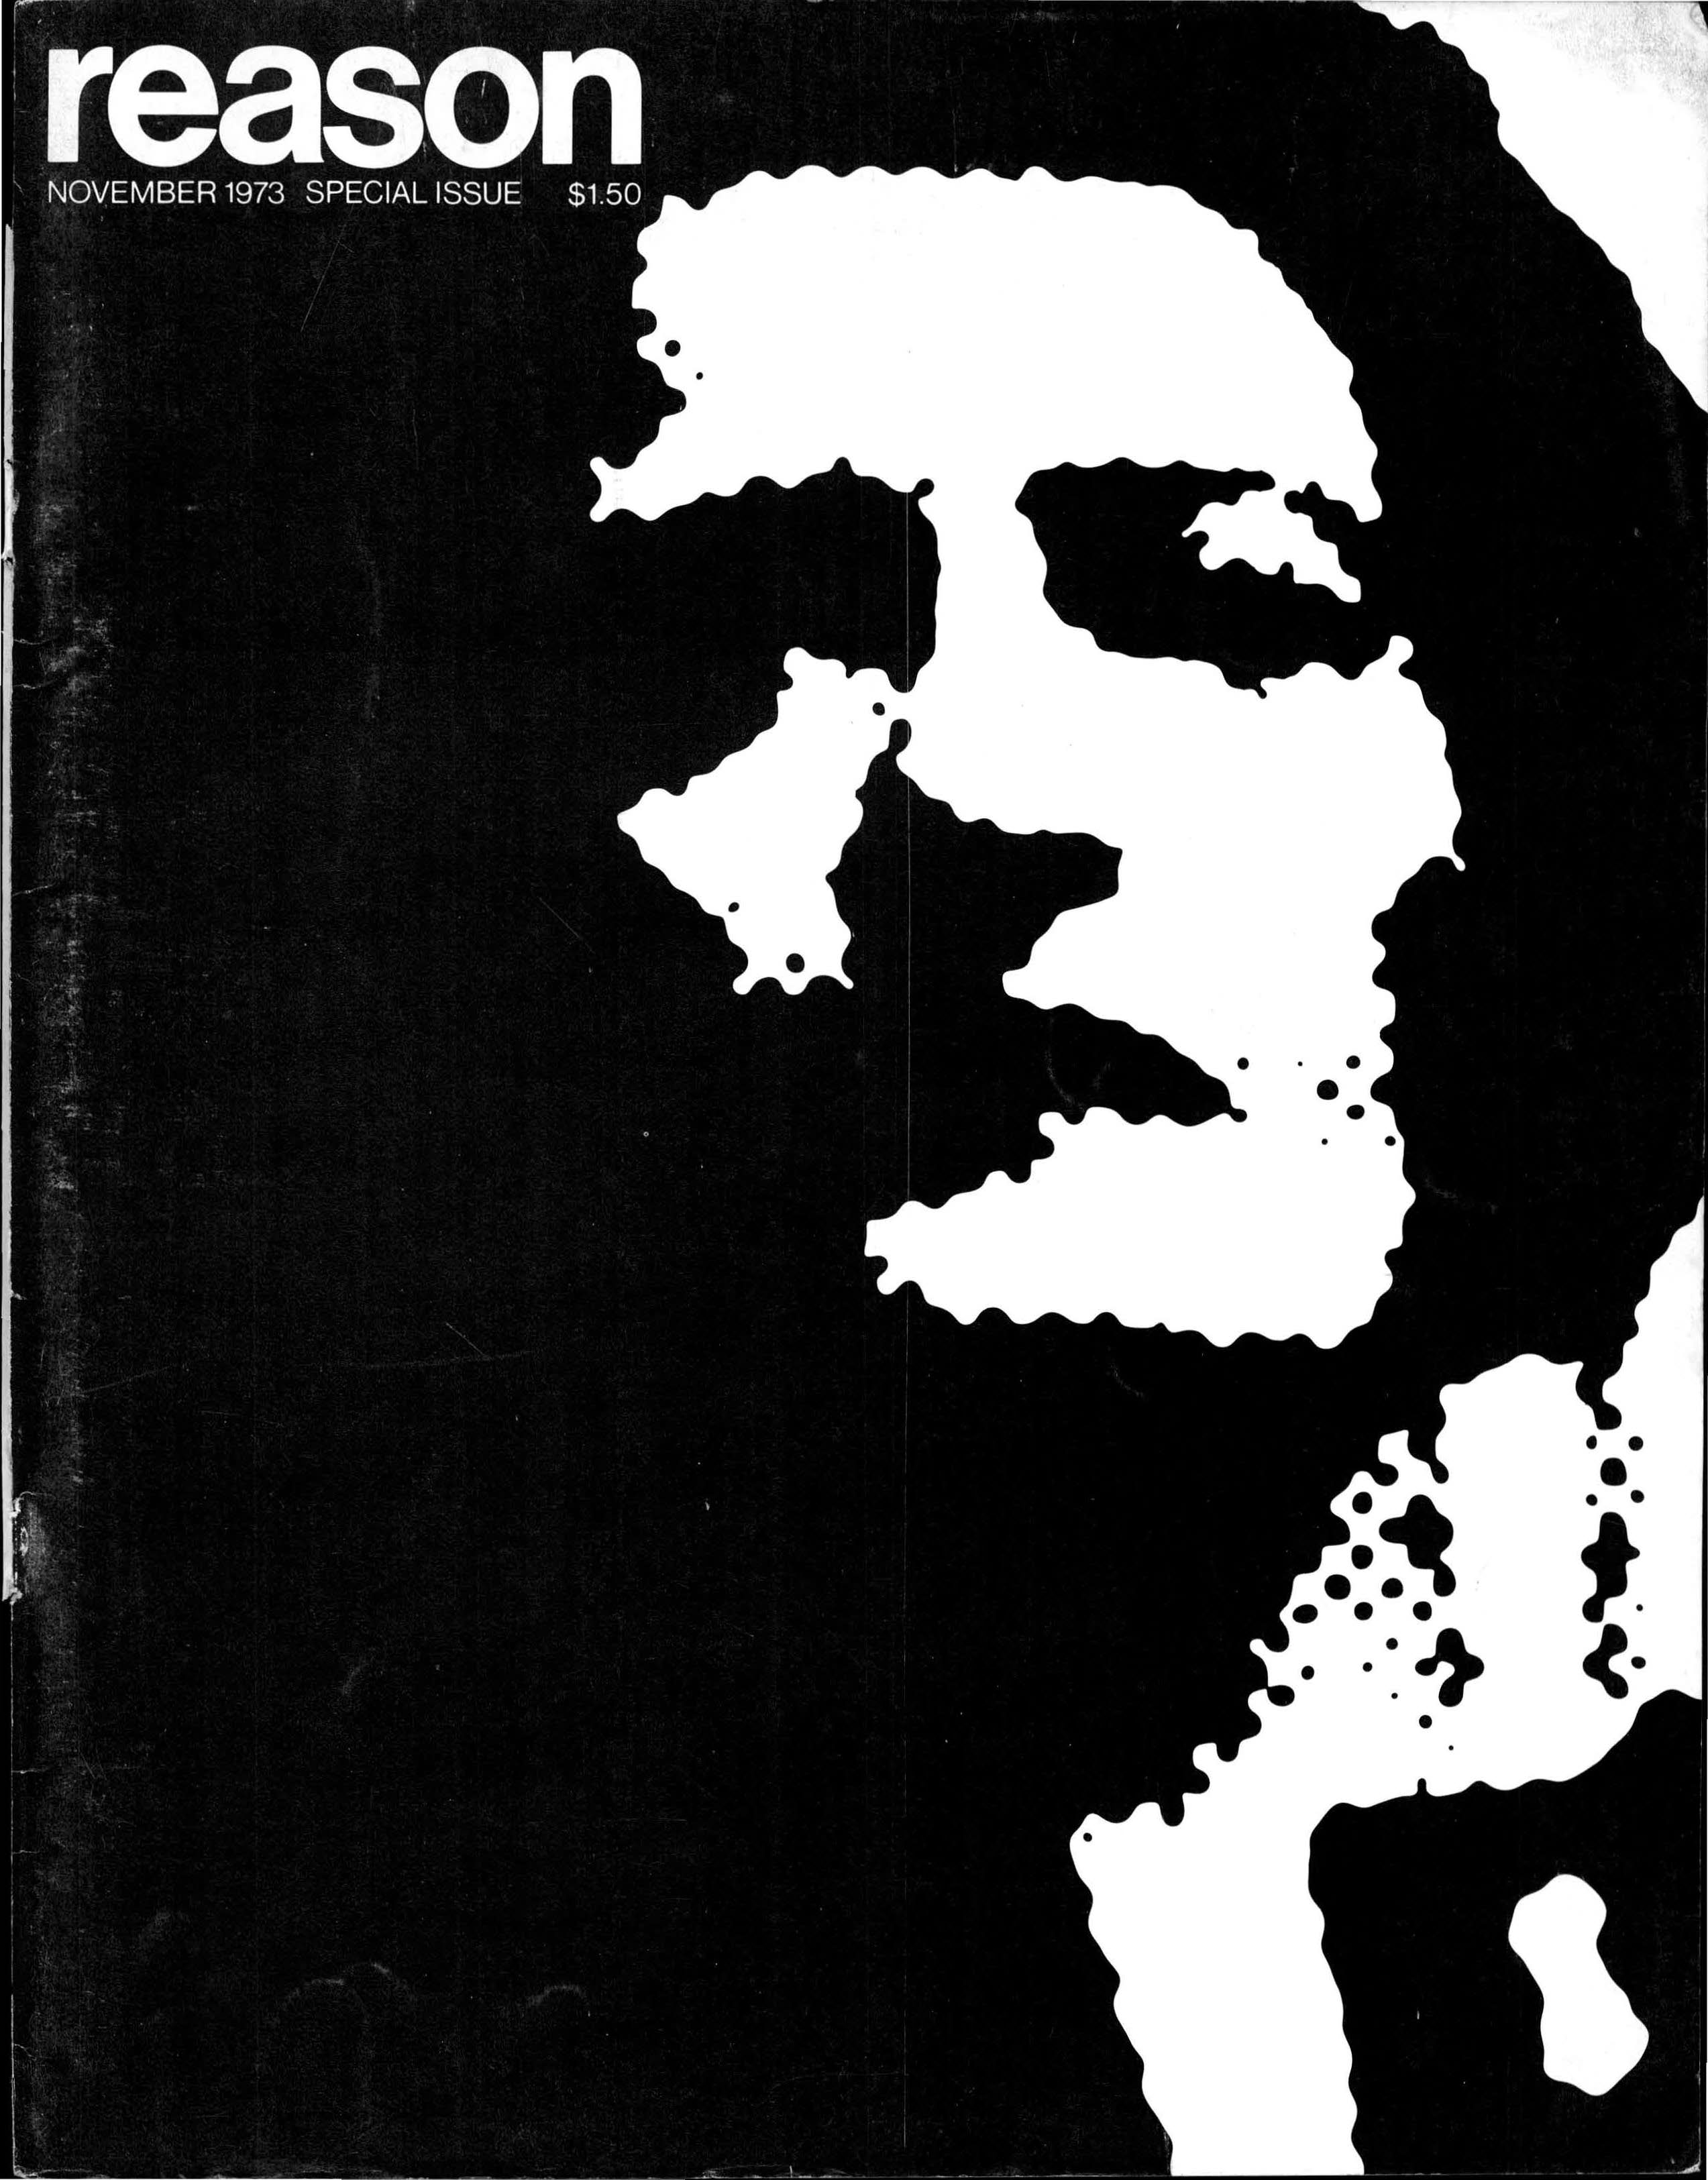 Reason Magazine, November 1973 cover image